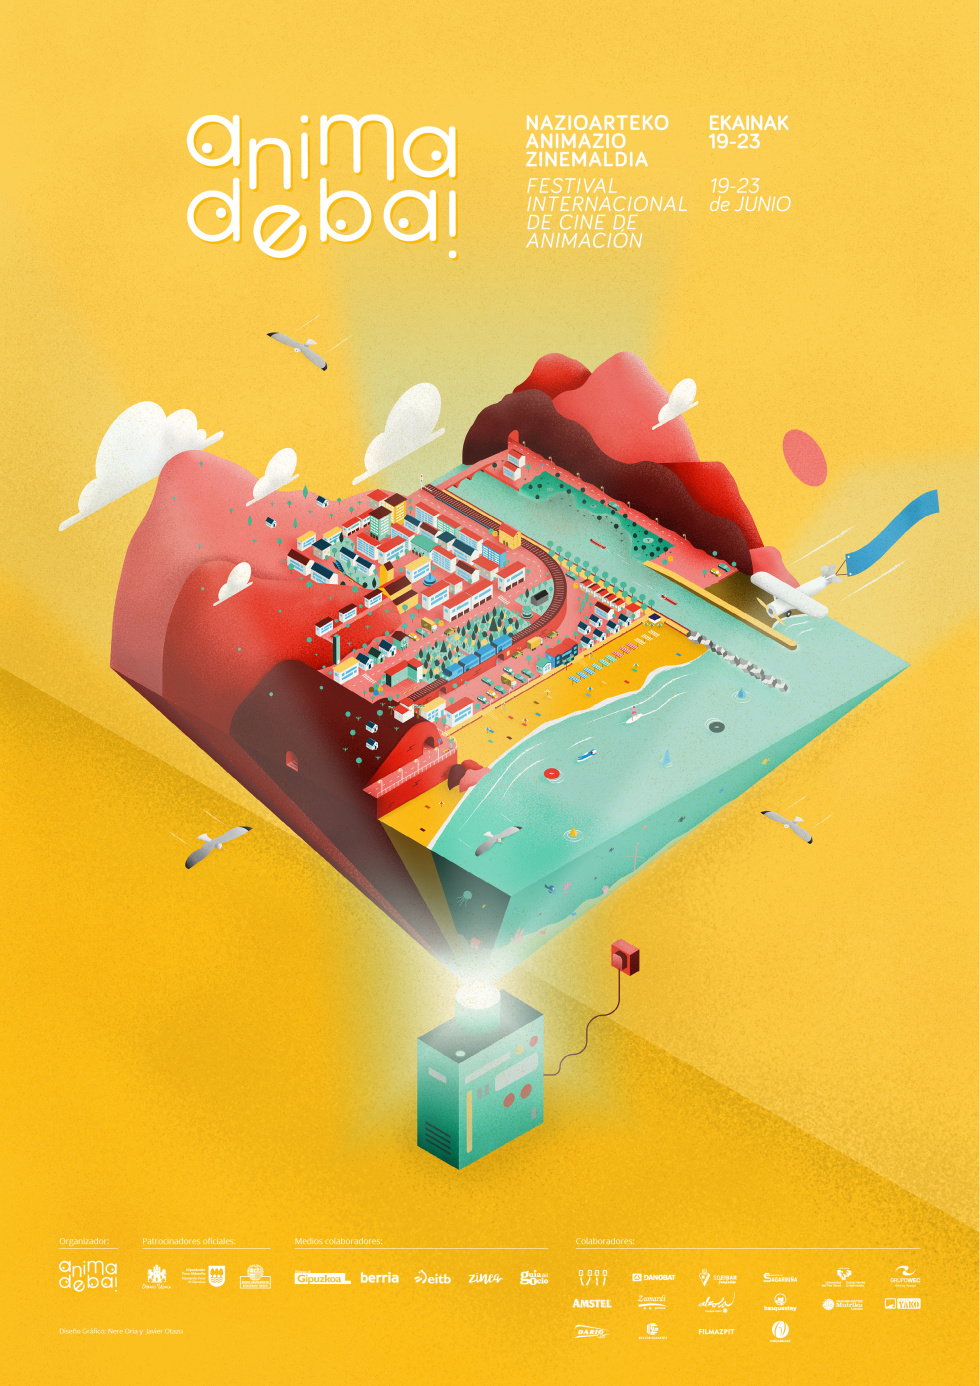 Yellow poster print with logo and supporting event information at the top of the page in white text. At bottom of poster, a projector is projecting a tiny beach city upwards that takes up the most space on the poster. Complete with red mountains, white clouds, rows of houses, and small boats. Branding in white text below projector.